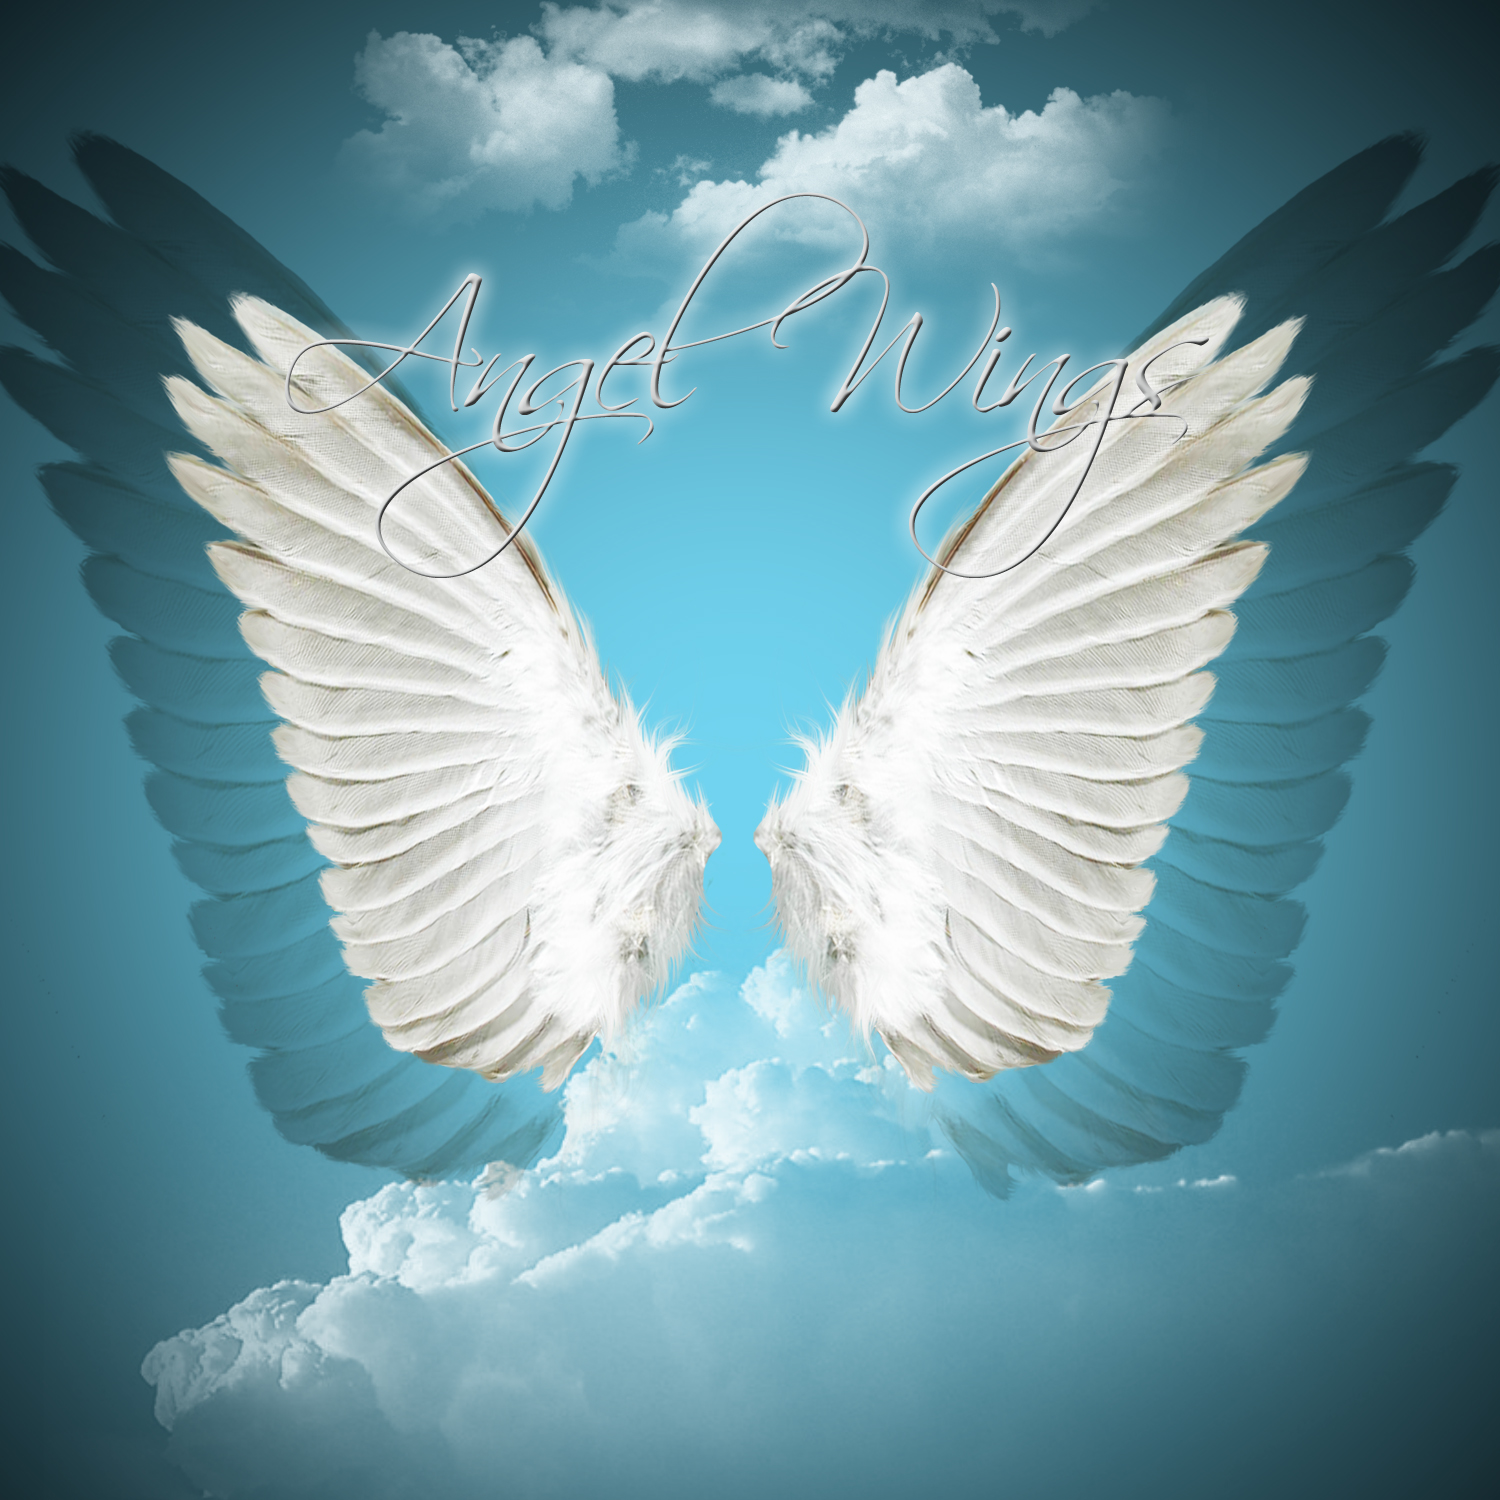 Angel Wings Background - WallpaperSafari